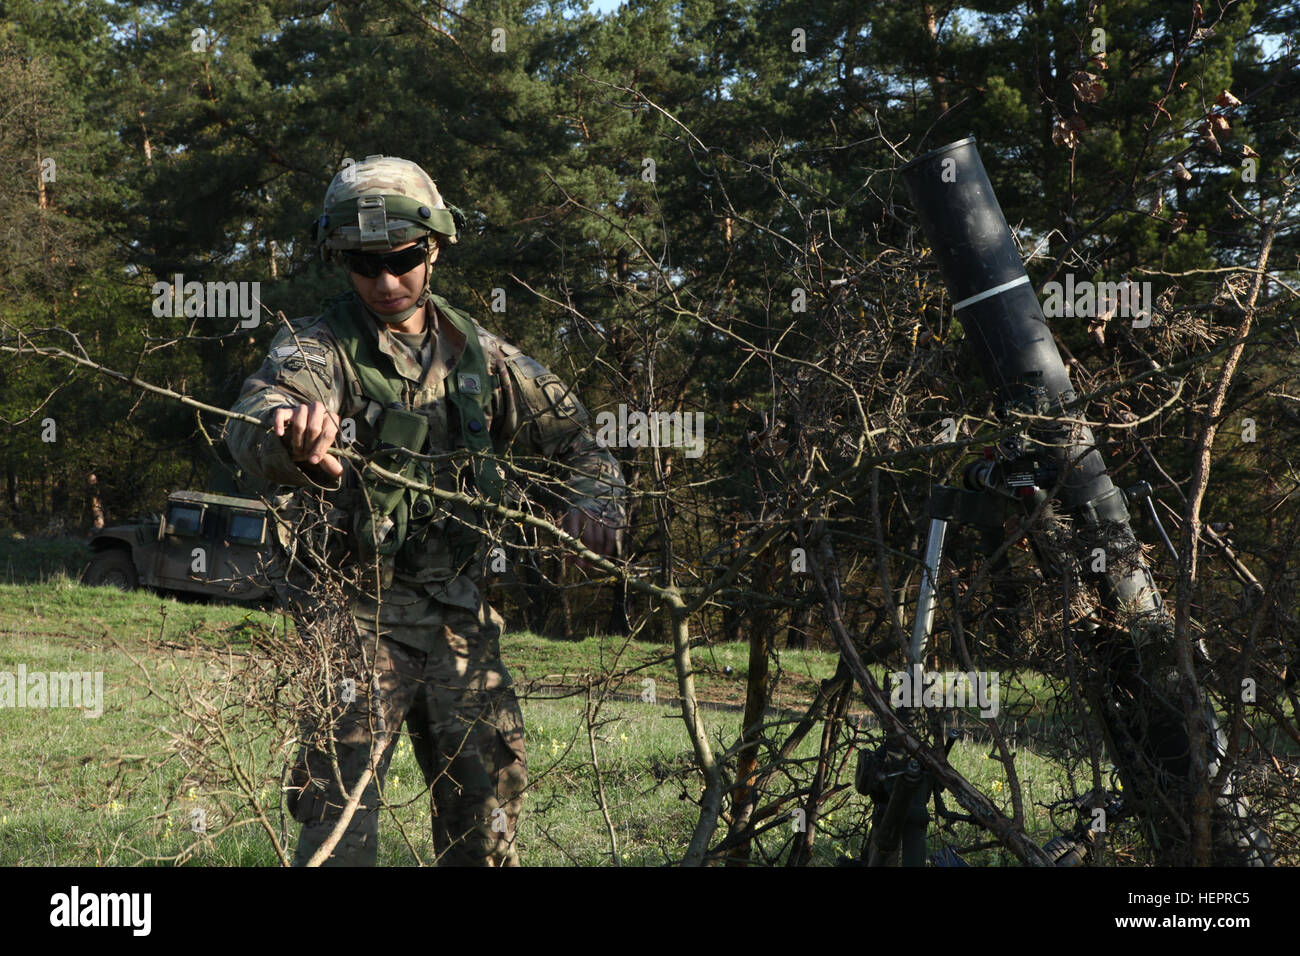 A US Soldier Of 1st Squadron 91st Cavalry Regiment 173rd Airborne Brigade Camouflage M120 Mortar System While Conducting Defensive Operations During